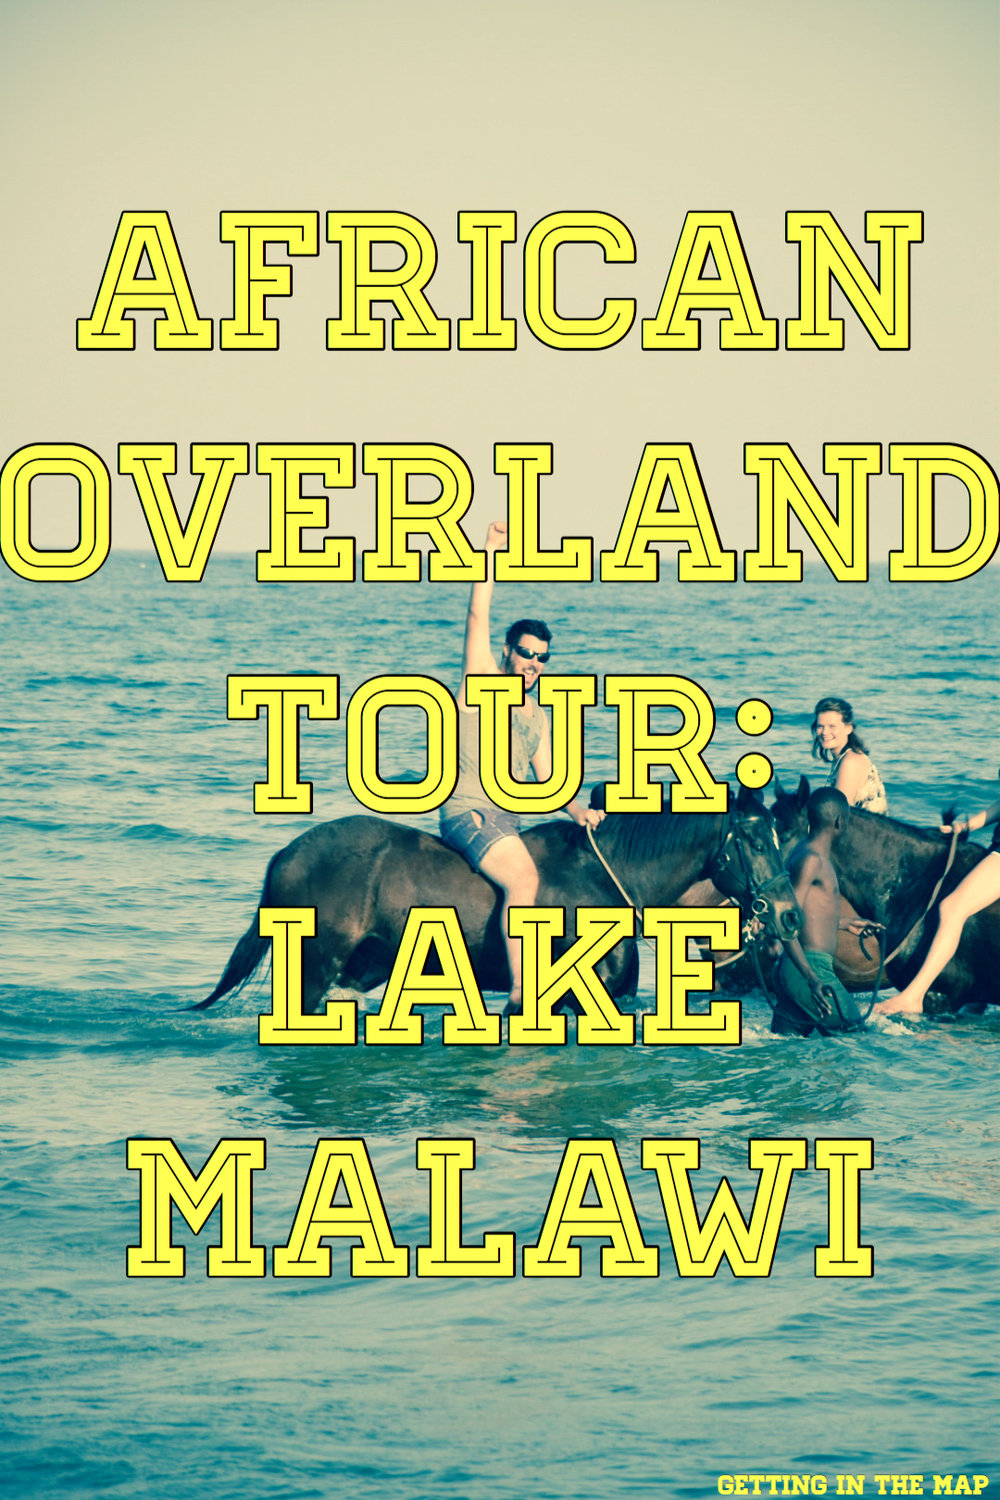 Lake Malawi Africa Map.African Overland Tour Lake Malawi Getting In The Map